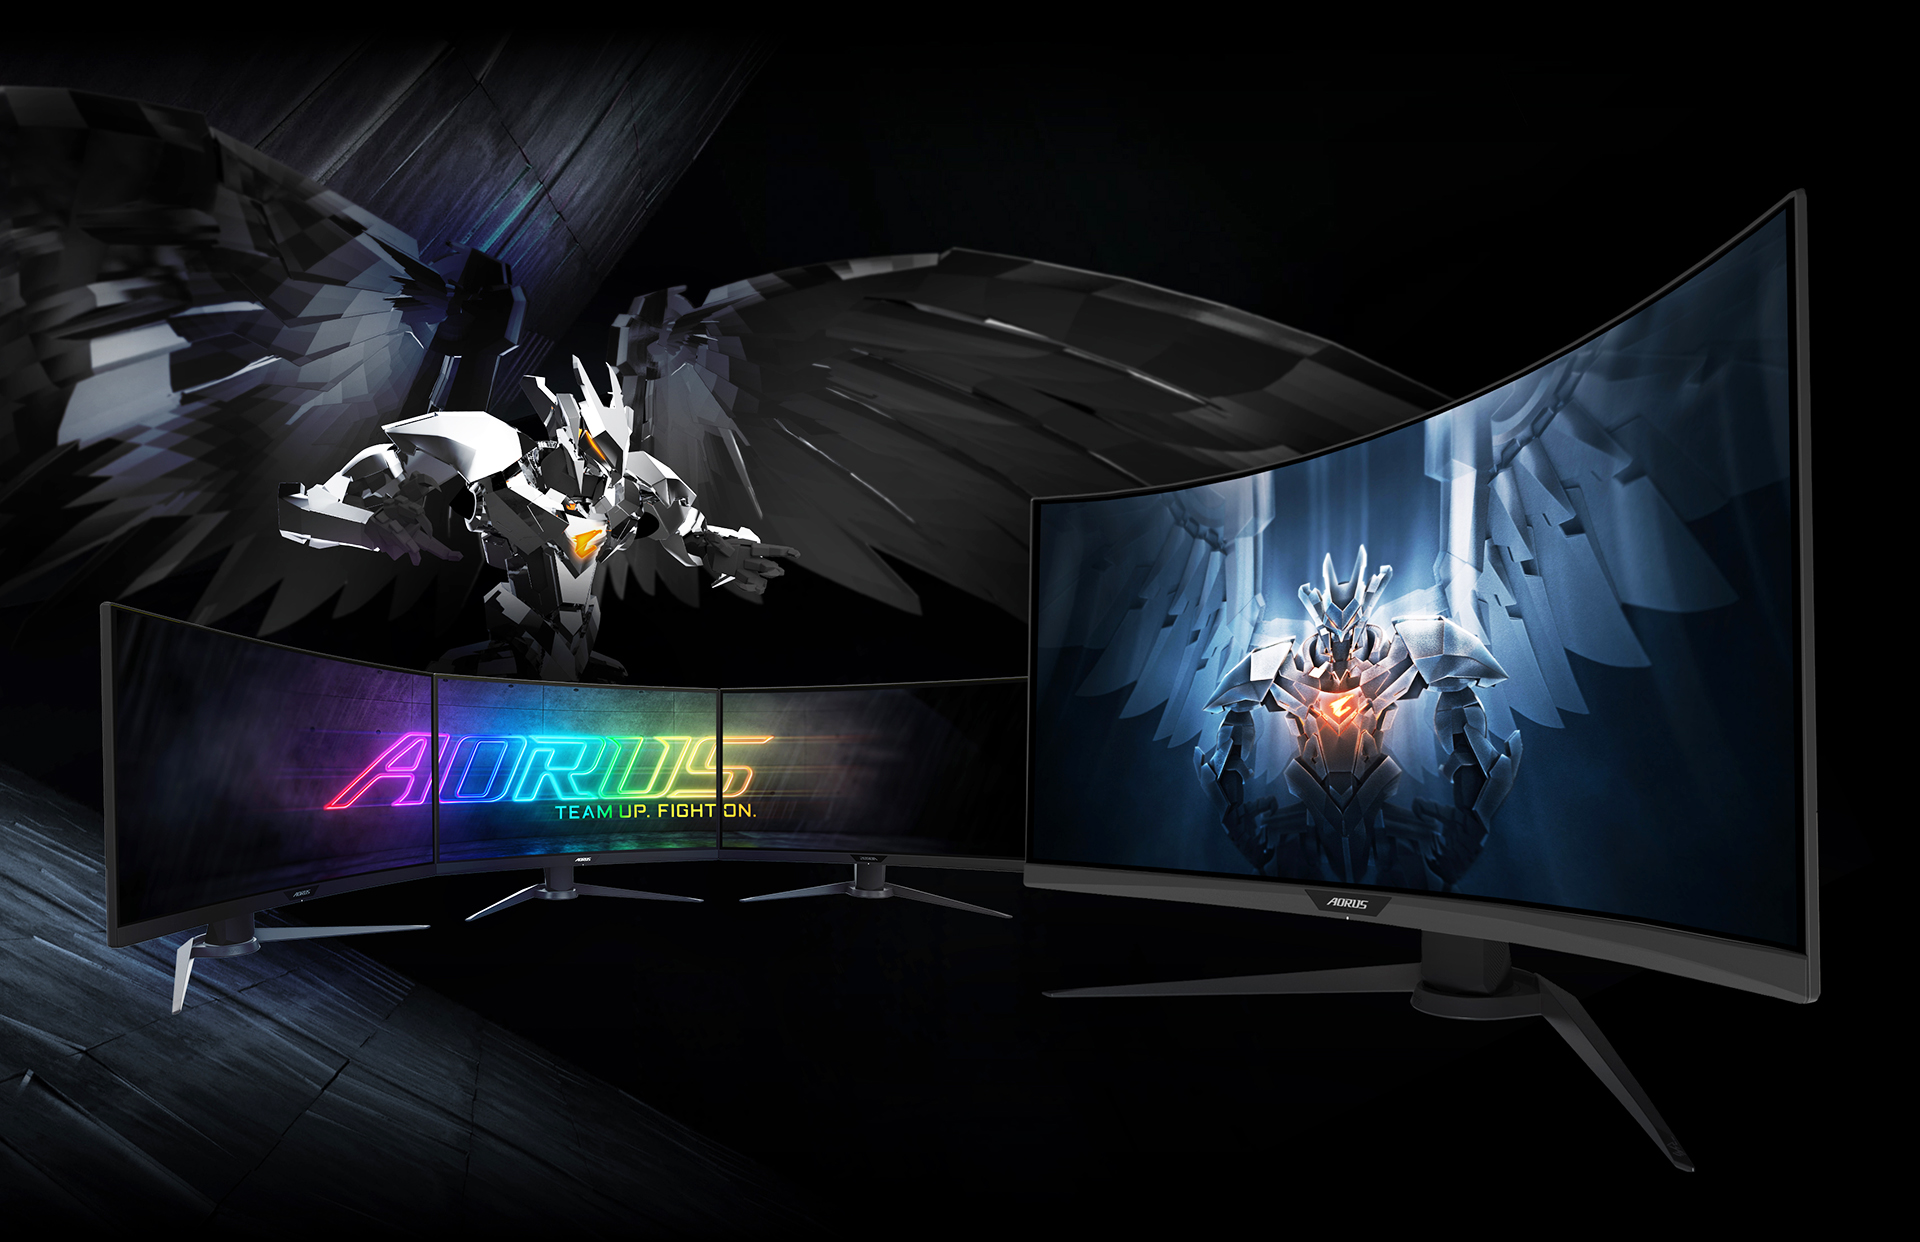 The Gigabyte Aorus CV27Q Offers 1440p Gaming, And Still Boasts The Features Of The 'World's First Tactical Gaming Monitor'